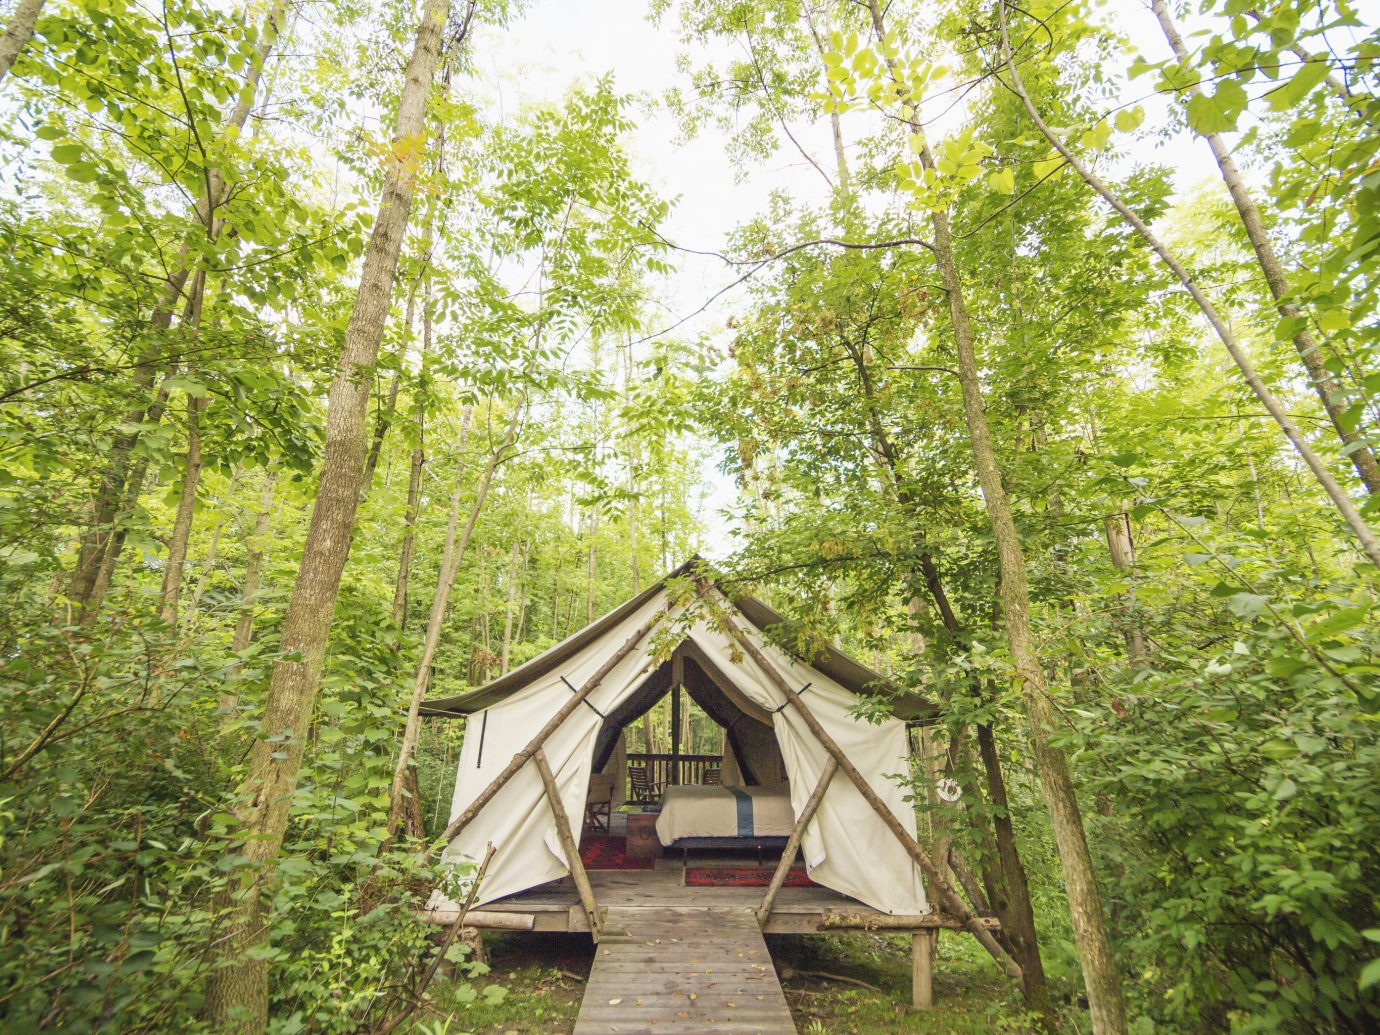 Glamping Outdoors + Adventure Weekend Getaways tree outdoor Nature nature reserve woodland path vegetation ecosystem building Forest leaf plant Jungle old growth forest rainforest wood biome cottage hut grass outdoor structure grove trail house temperate broadleaf and mixed forest wooded surrounded